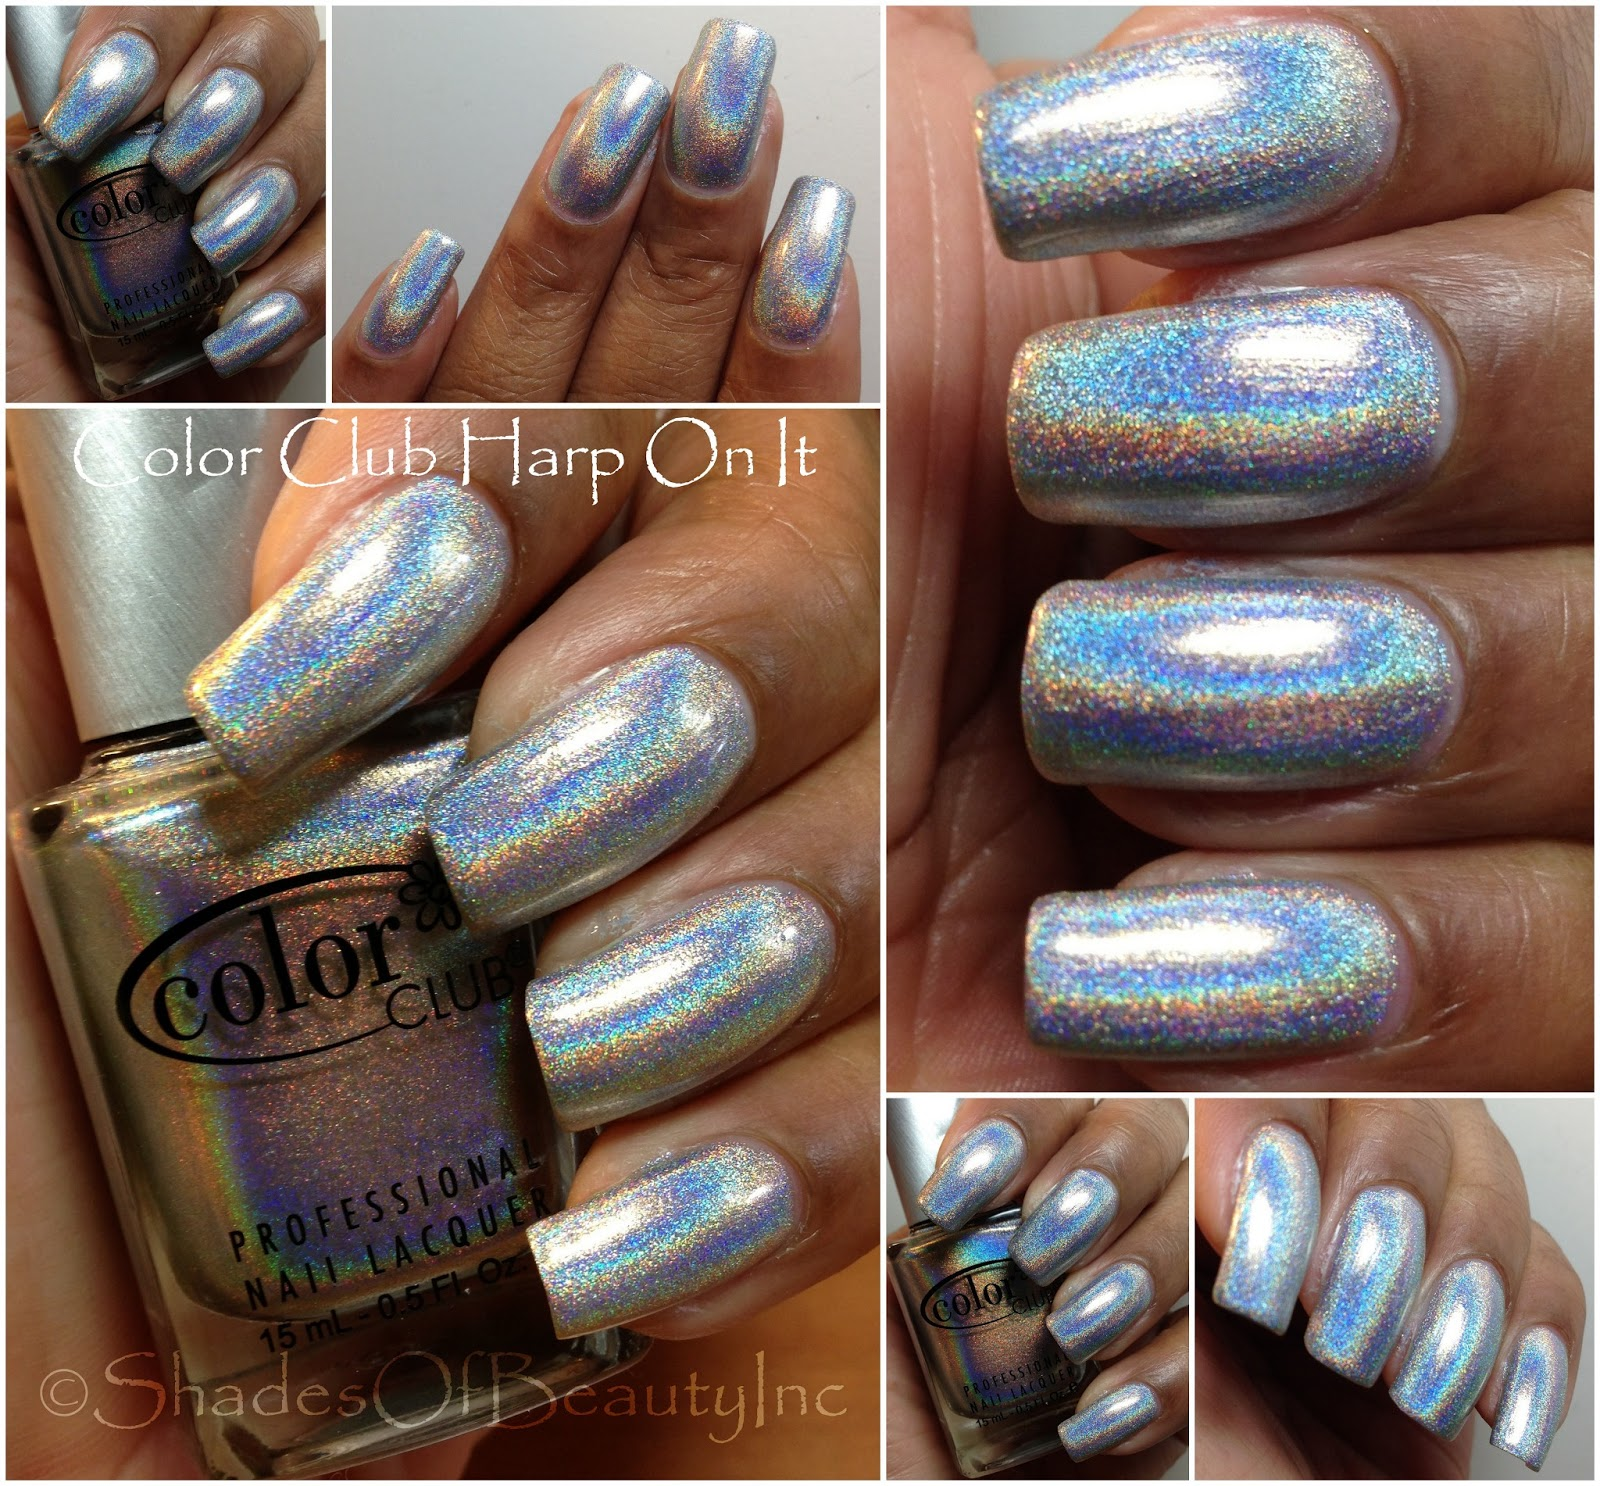 Color Club Holographic Nail Polish Swatches: Shades Of Beauty, Inc.: Host Of Holos: Color Club 2012